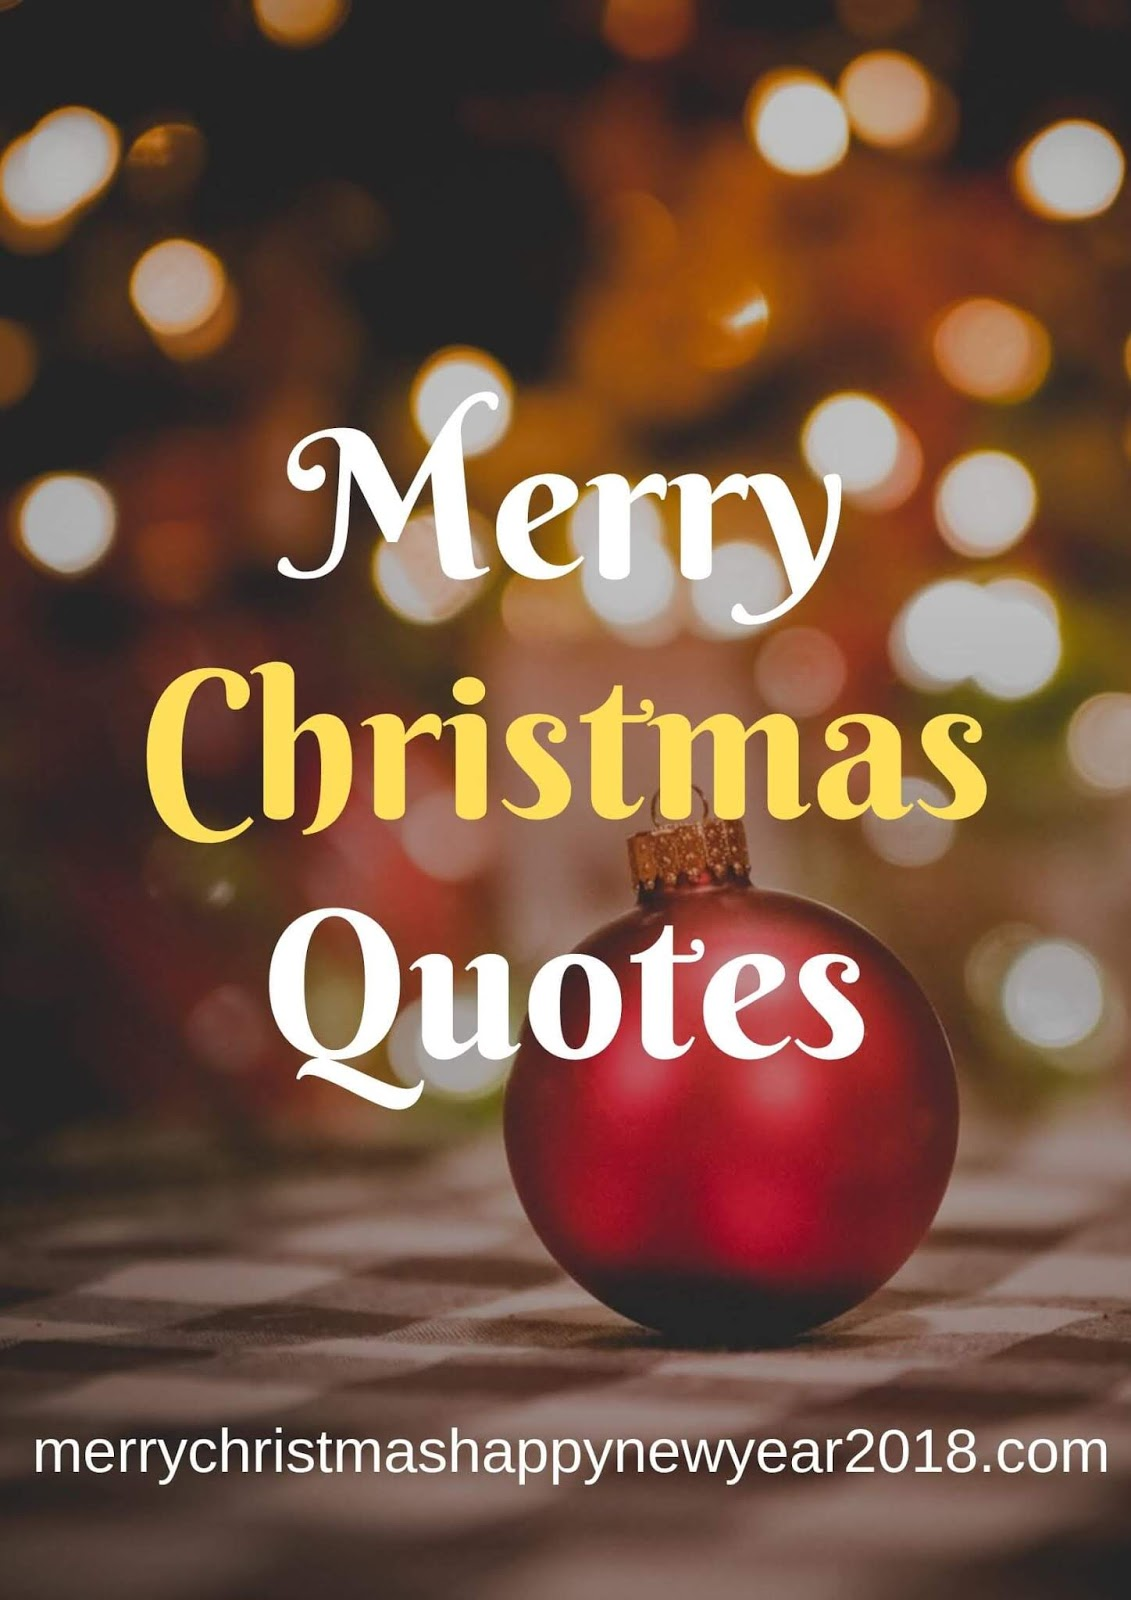 Merry Christmas Quotes.Latest 150 Short Merry Christmas Quotes 2019 Christmas Day